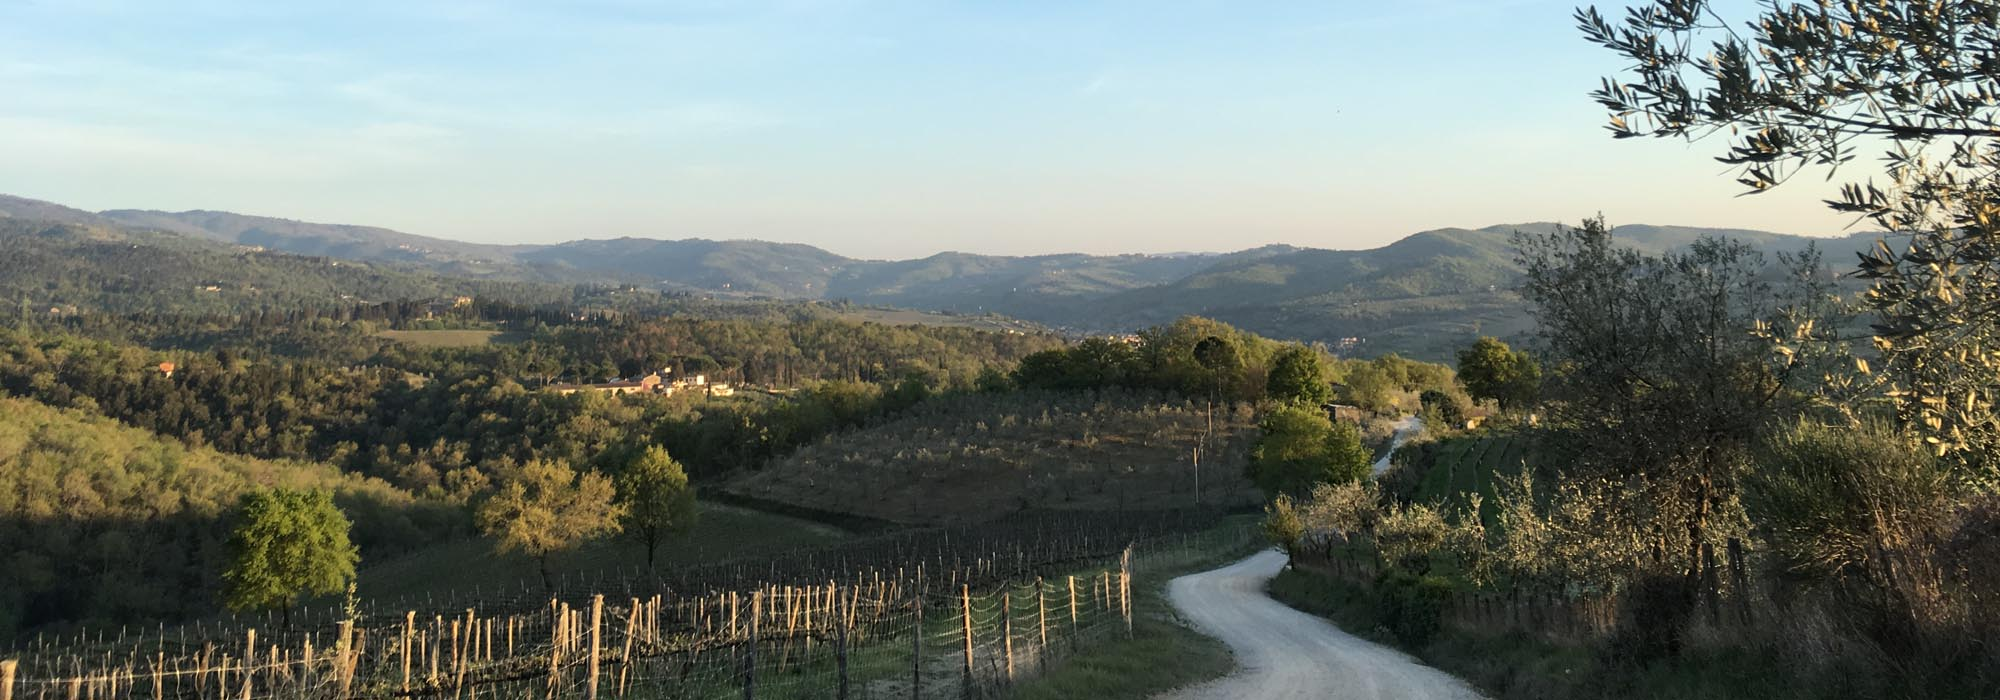 Bed and Breakfast Greve in Chianti near Florence - B&B Ancora del Chianti